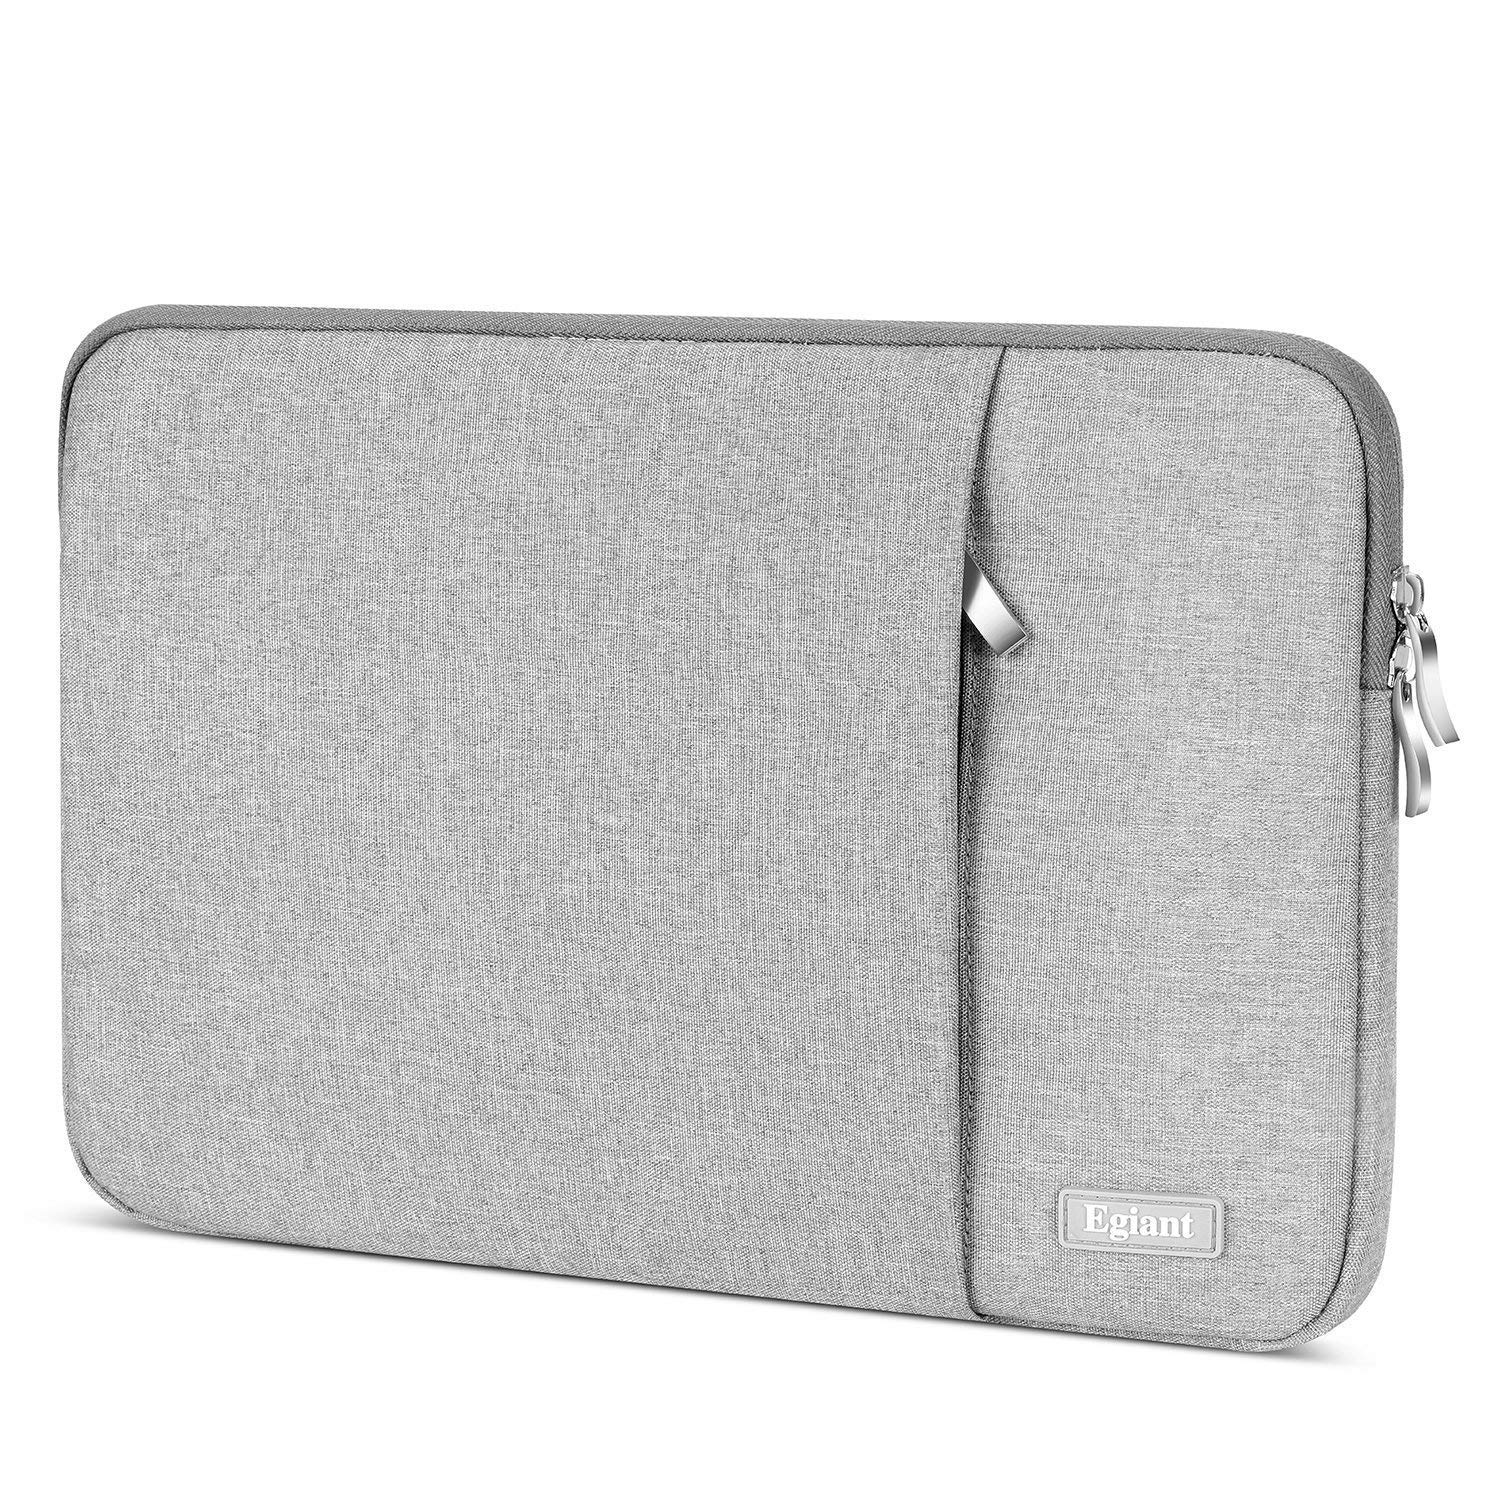 Egiant Laptop Sleeve Water-Resistant Protective Cases Bag Compatible 14-15.4 Inch Notebook,2019 New MacBook Pro 16 A2141,MacBook pro 15 Retina,Chromebook 14,14 Inch Computer Carrying Cases Cover,Gray